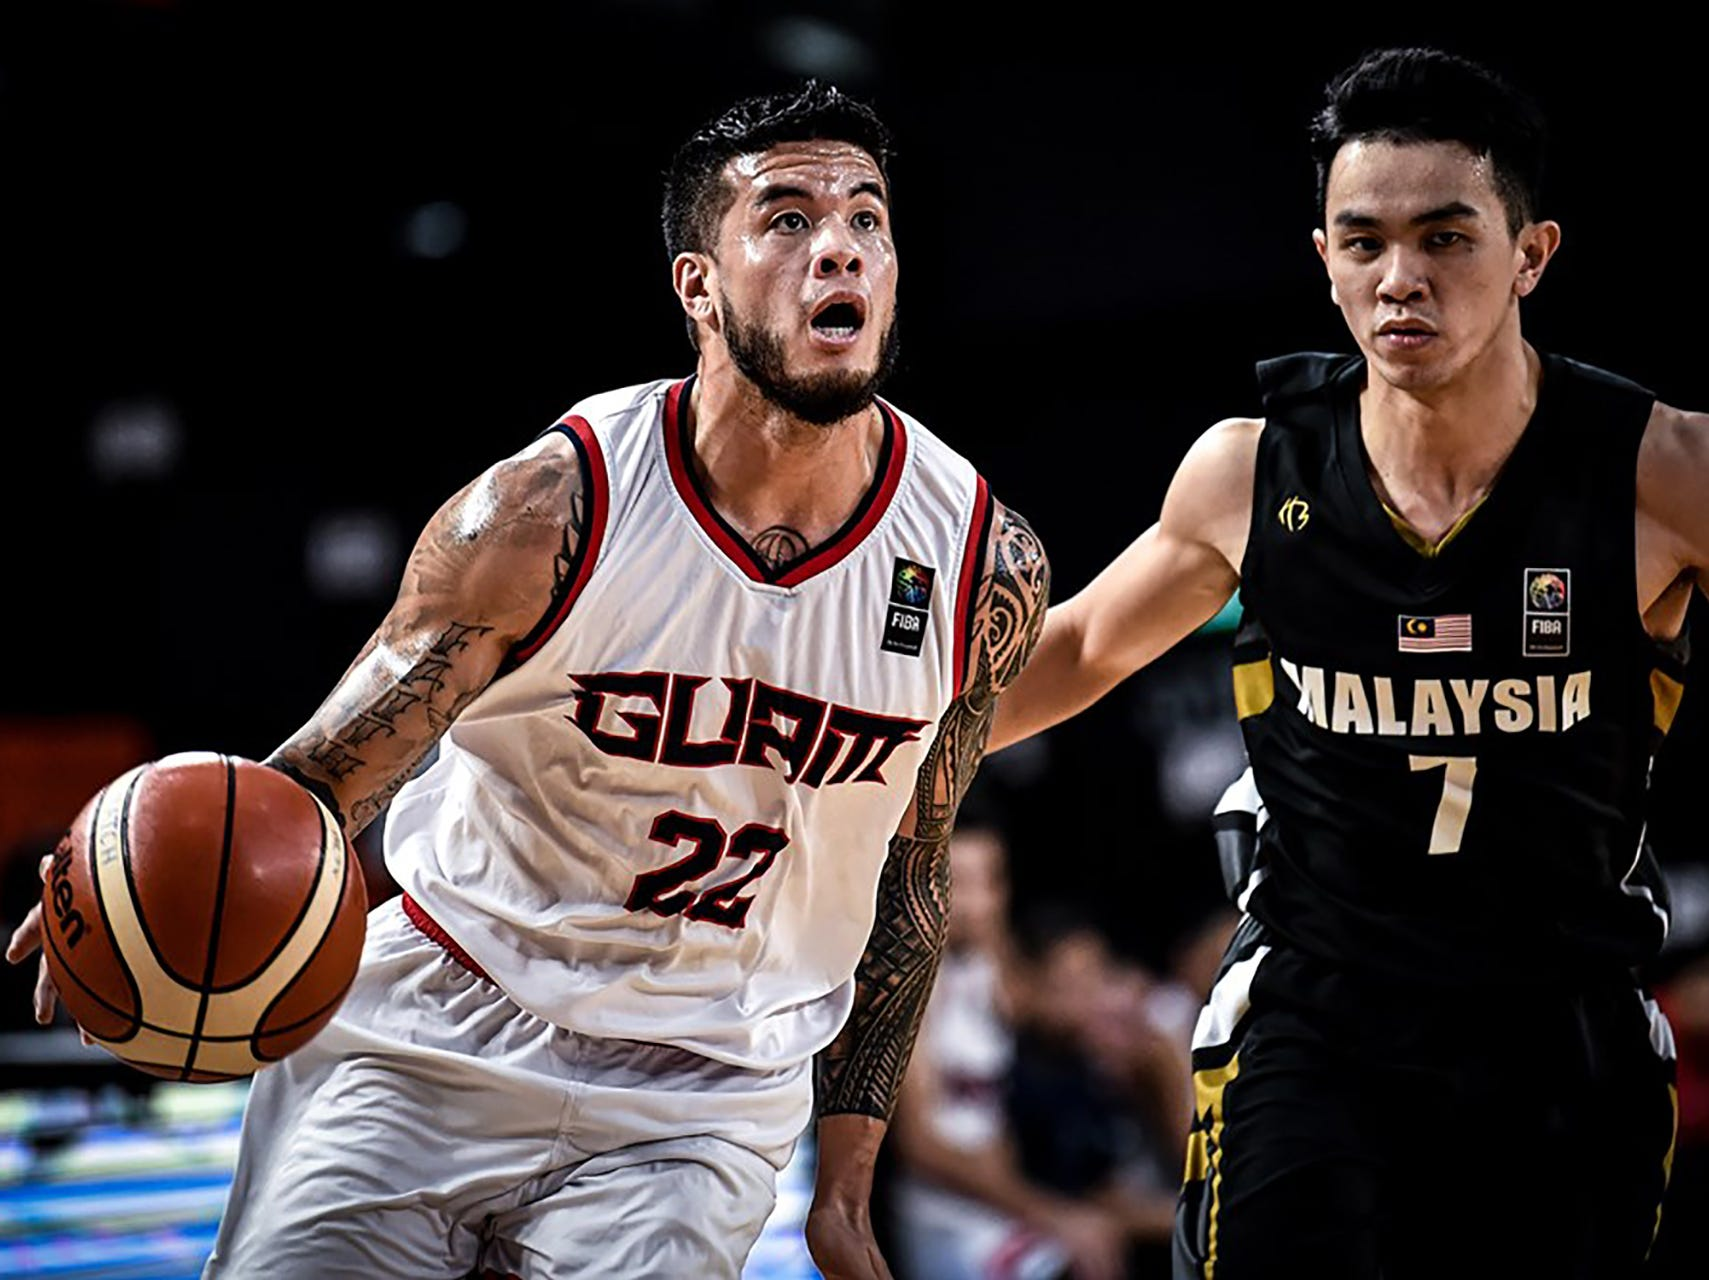 Daren Hechanova gets ready to dish one of his 11 assists during his team's final game against Malaysia. Hechanova had a triple double, and Guam won 101-78 to complete a 6-0 sweep of all teams in  Asia's Eastern Division and move on to the qualifier round of the FIBA Asia Cup 2021.